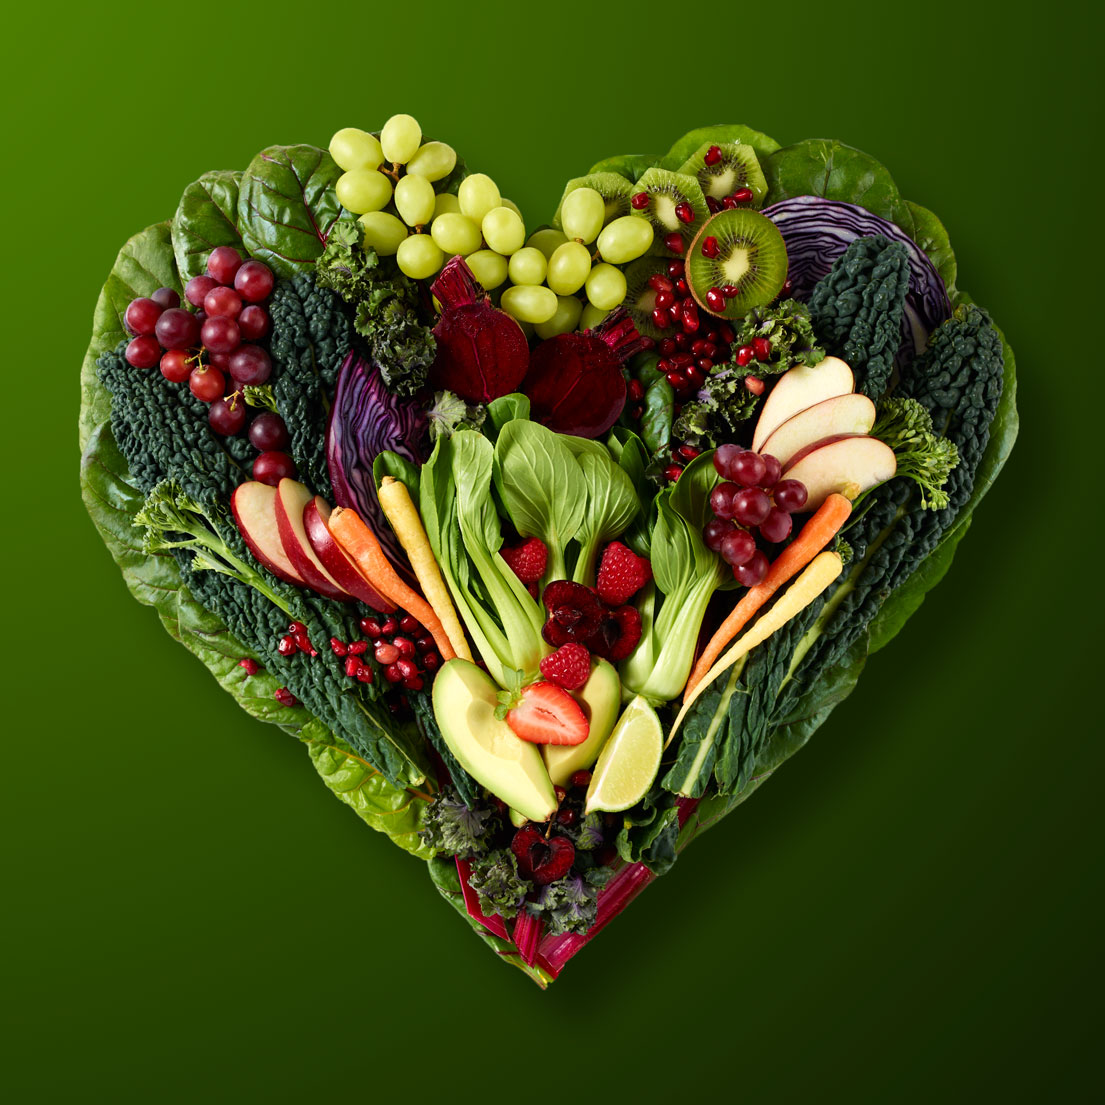 heart_shaped_vegetables